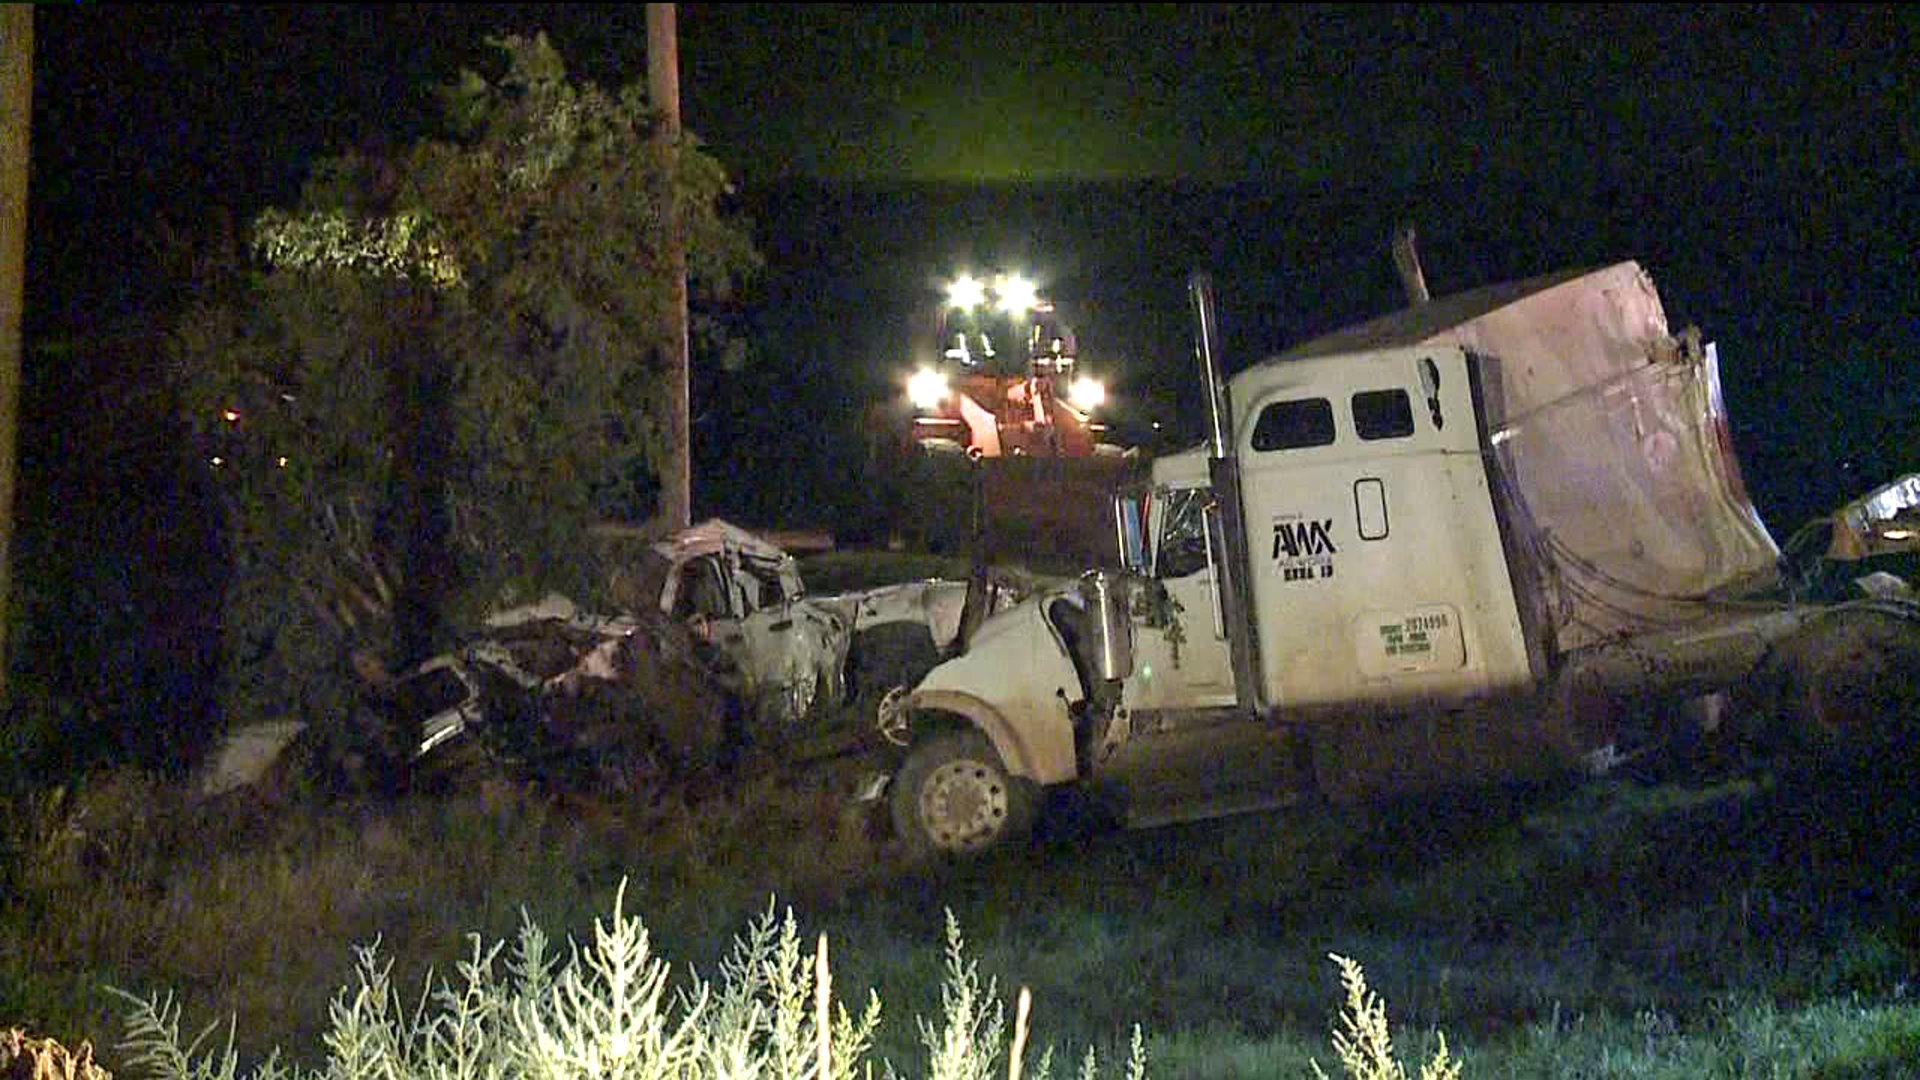 Deadly crash between semi hauling logs and pickup truck in west of Ault in Weld County, Colo.